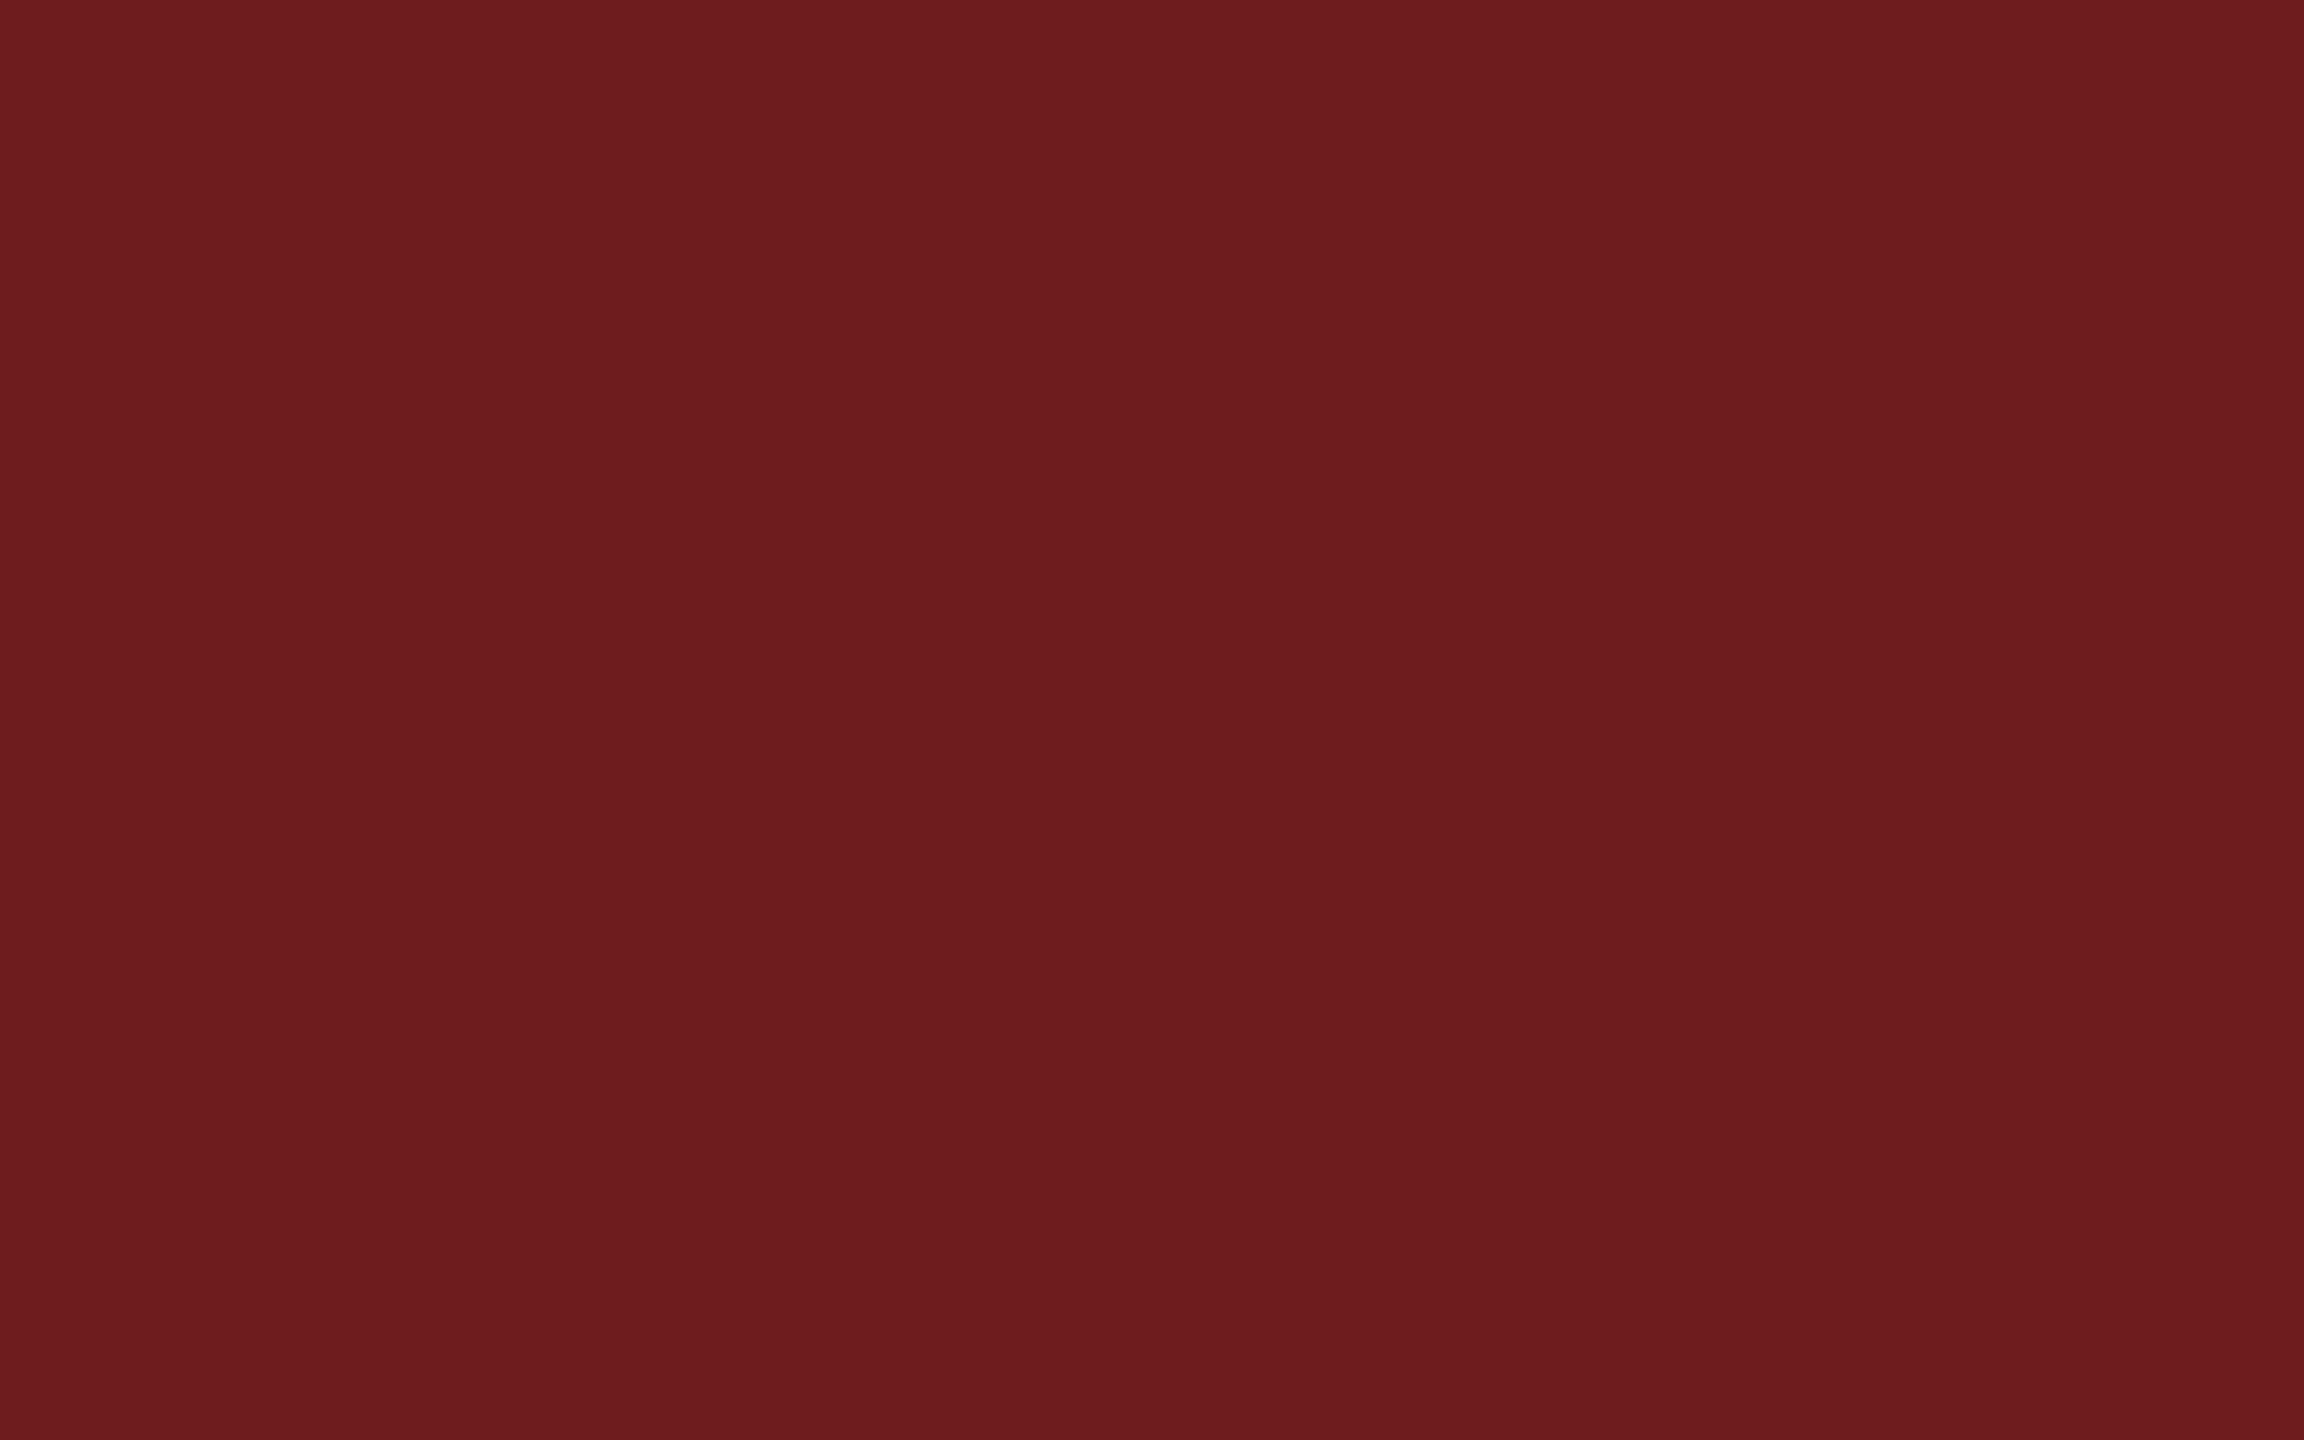 2304x1440 Prune Solid Color Background